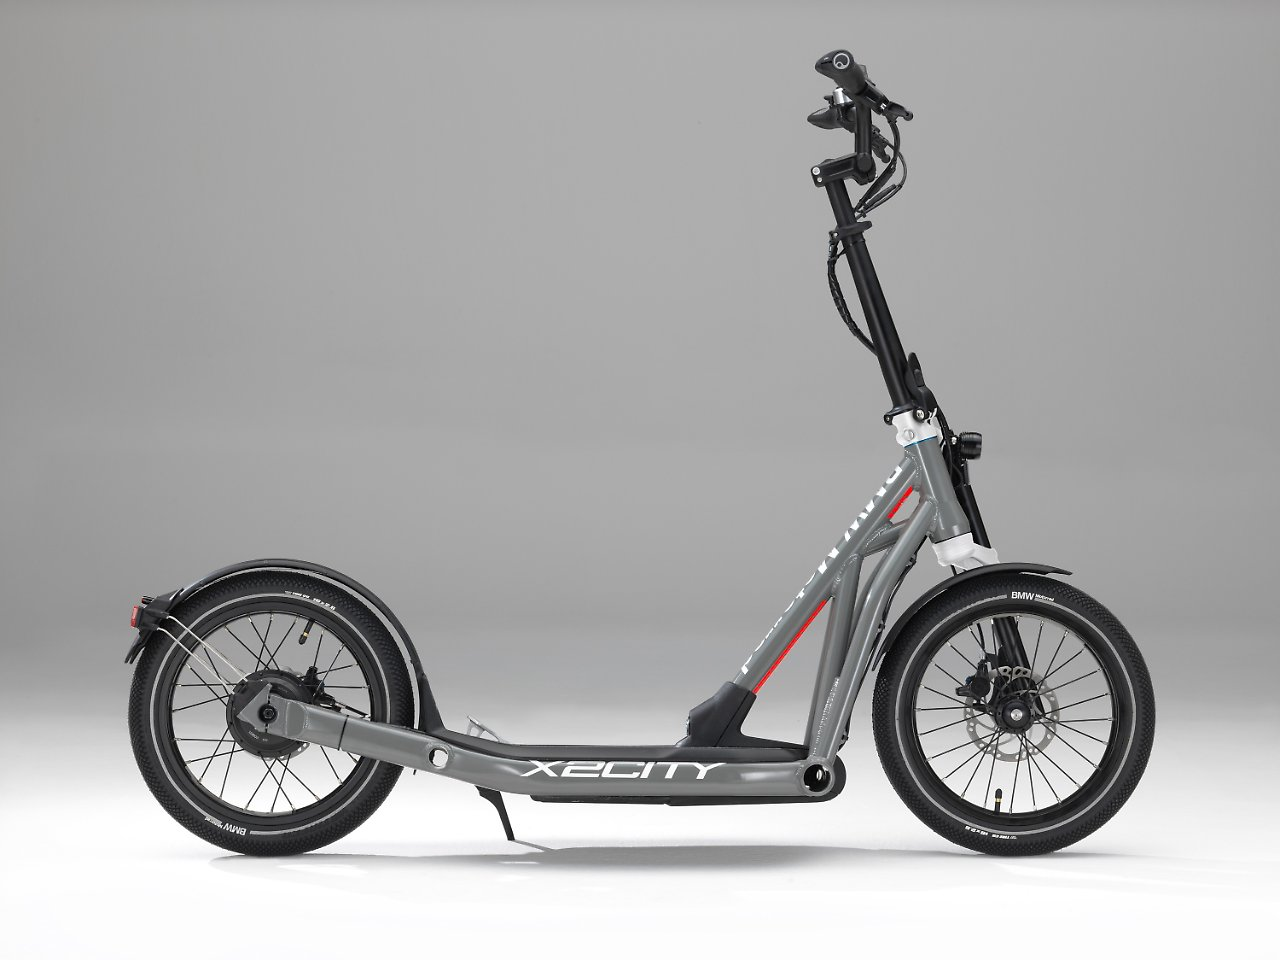 How To Make An Electric Scooter Go Faster? - ScooterPartner com